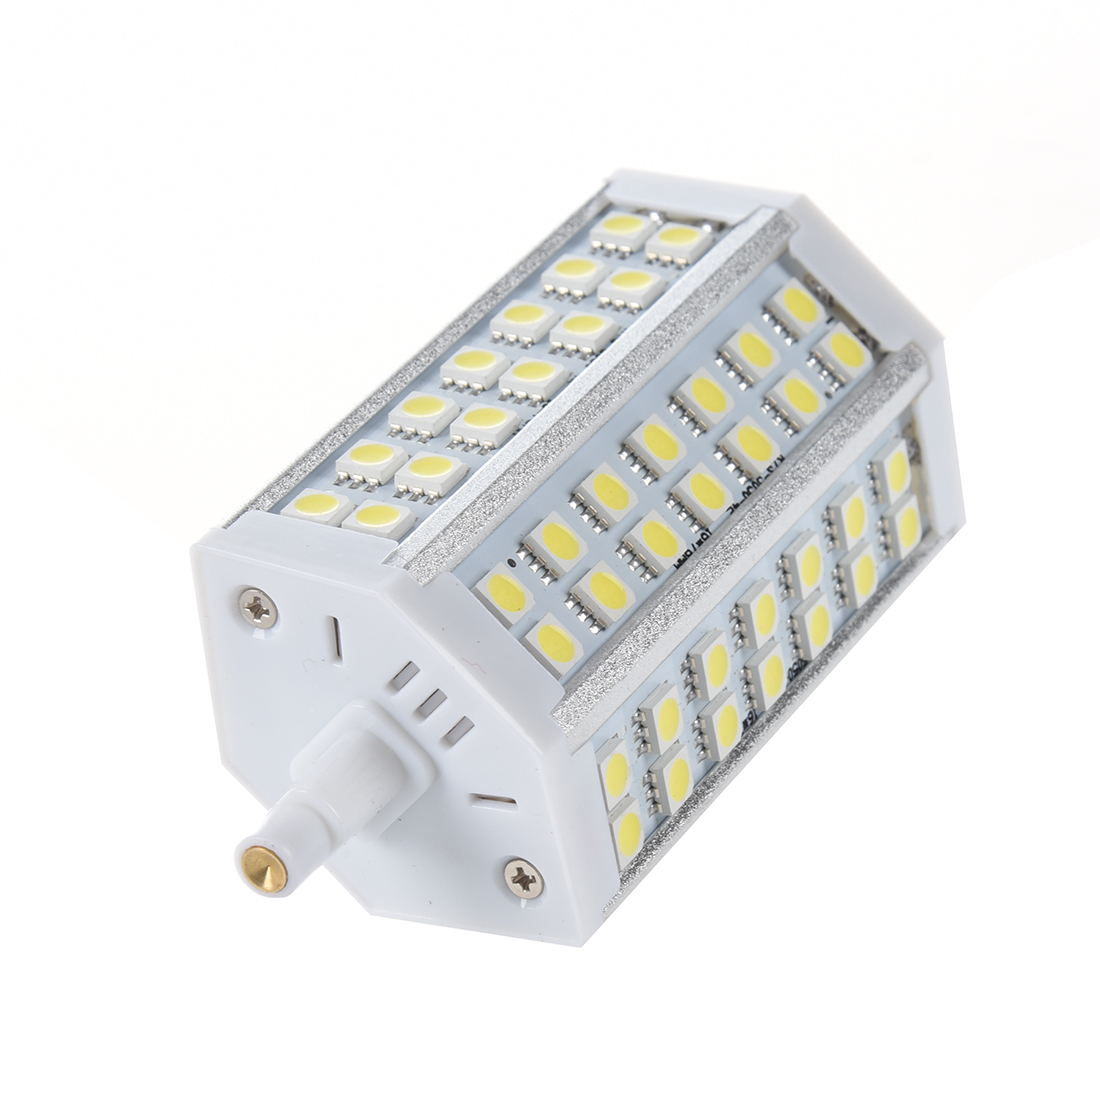 Led Halogen R7s J118 Energy Saving White 42 Smd Led Halogen Light Lamp